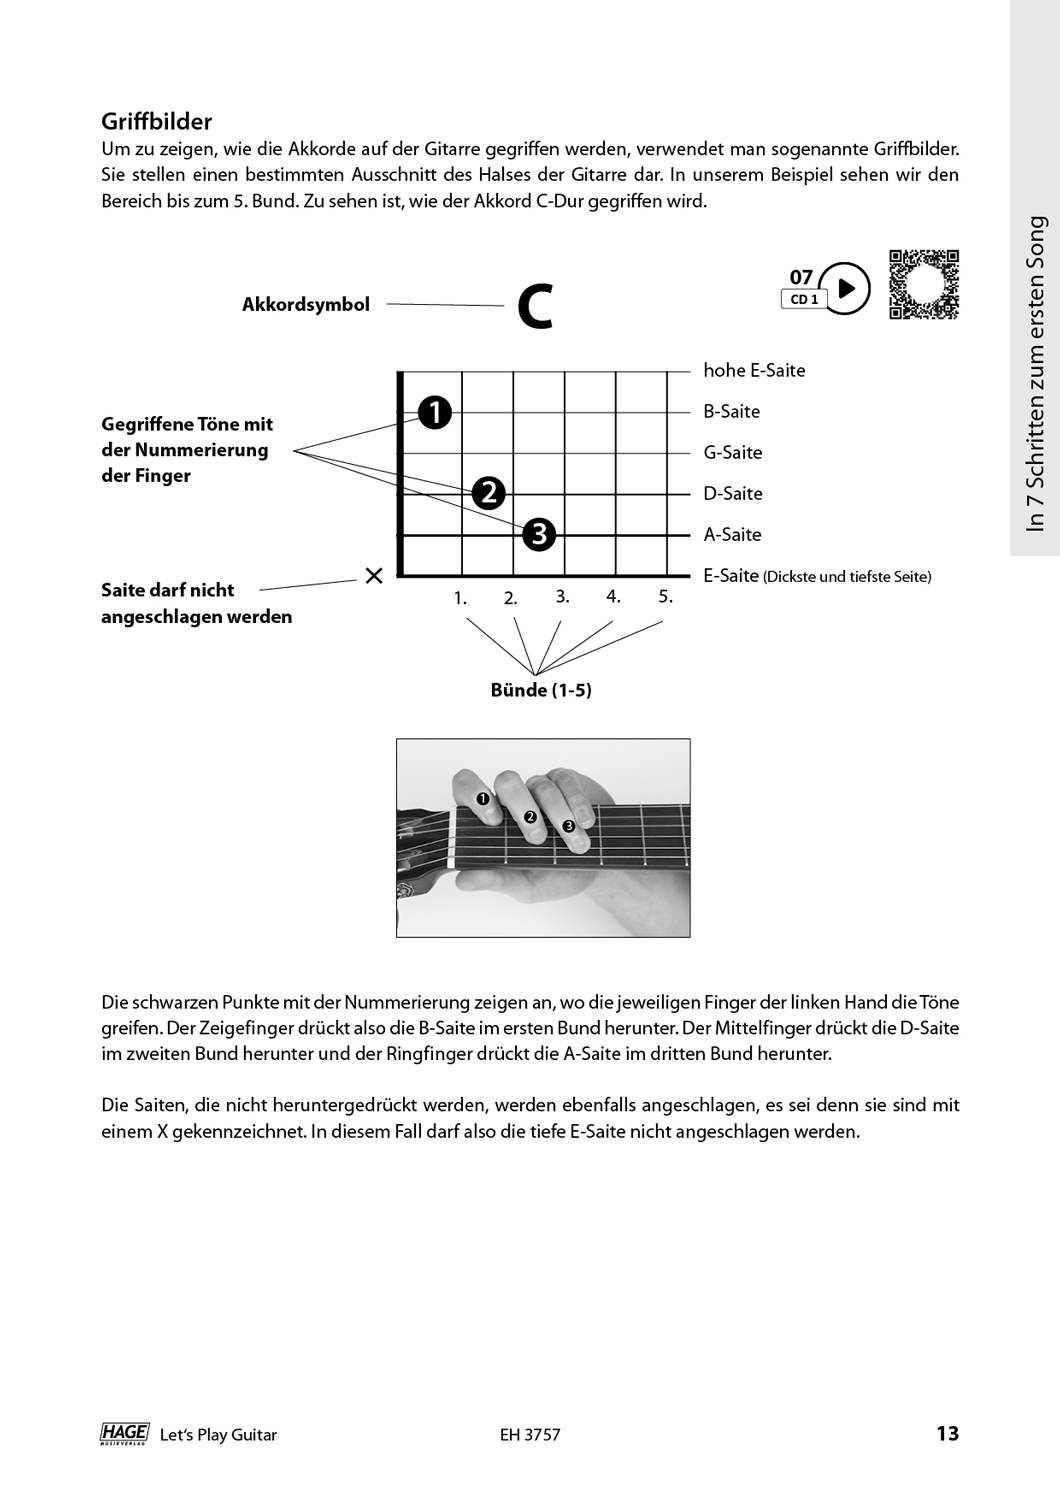 Let's Play Guitar Volume 1 (with 2 CDs and QR Codes) Pages 7